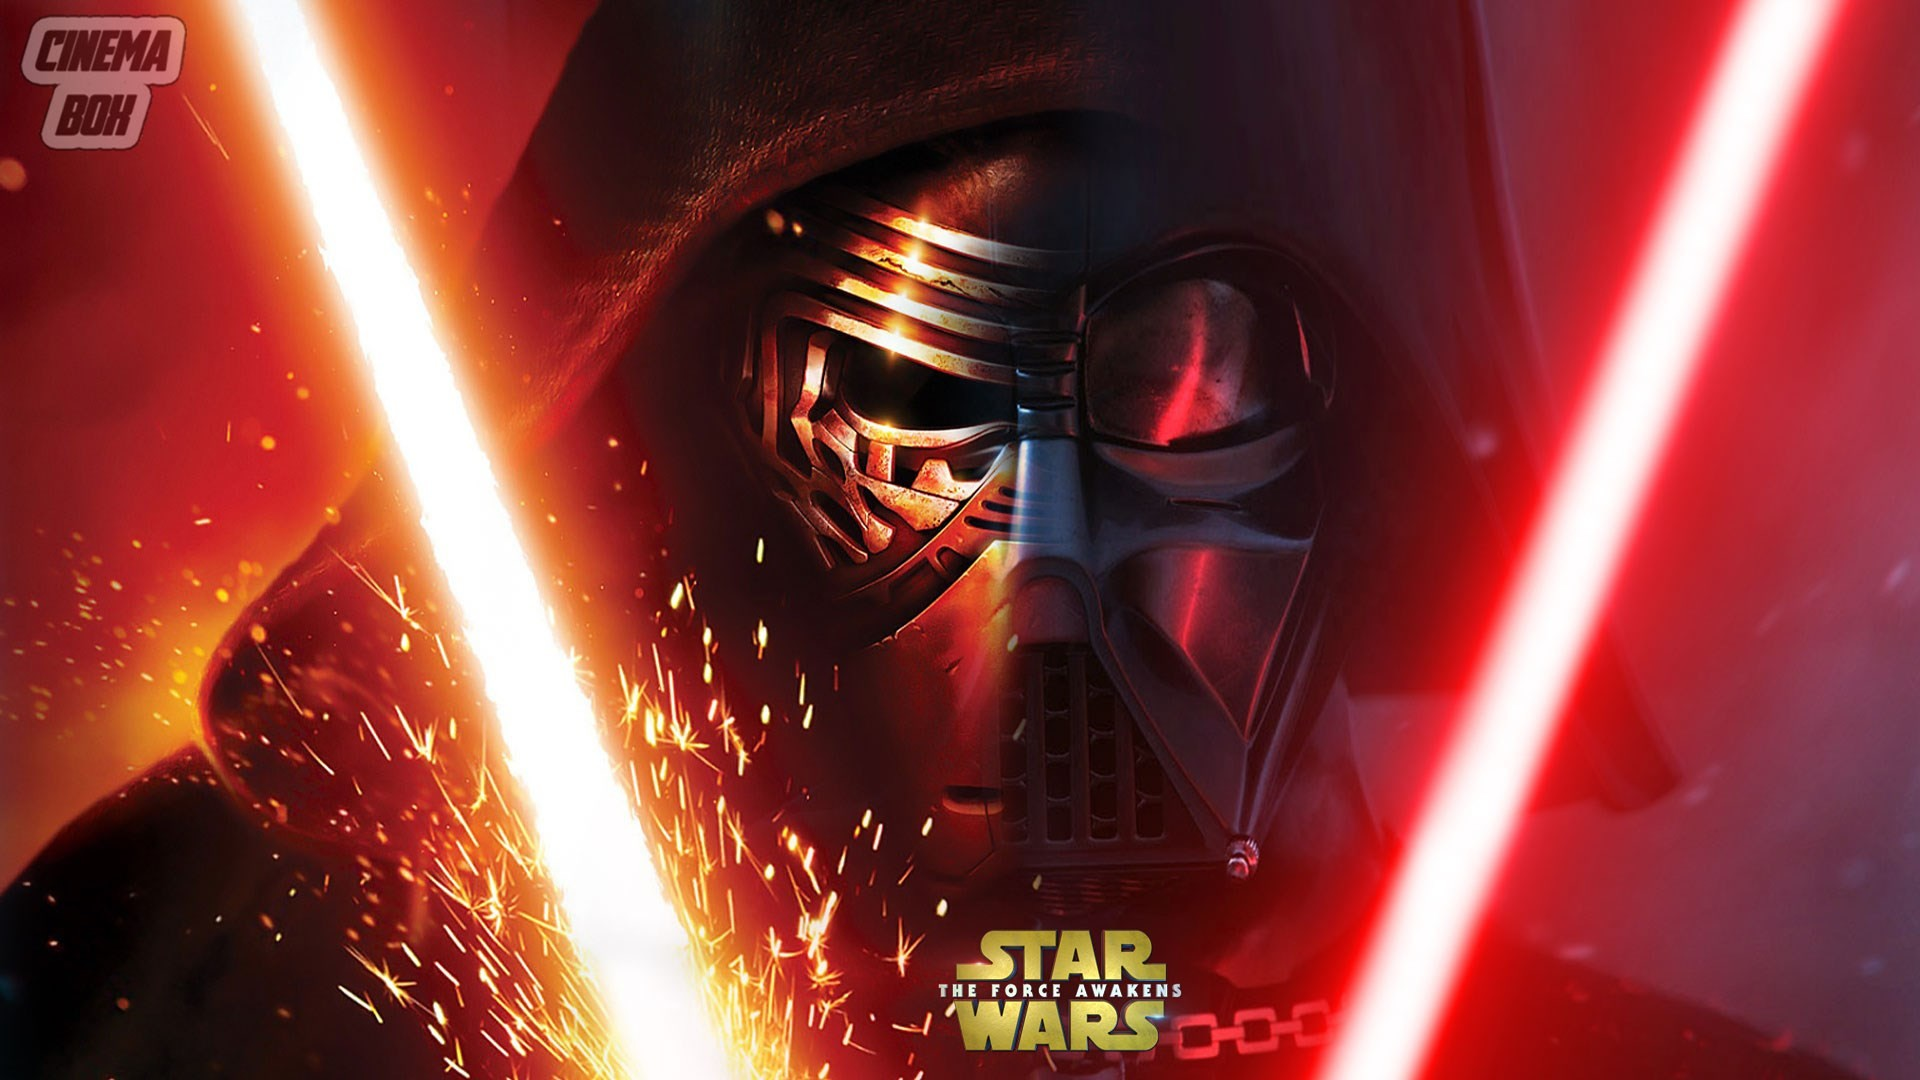 Background In High Quality – star wars episode vii the force awakens